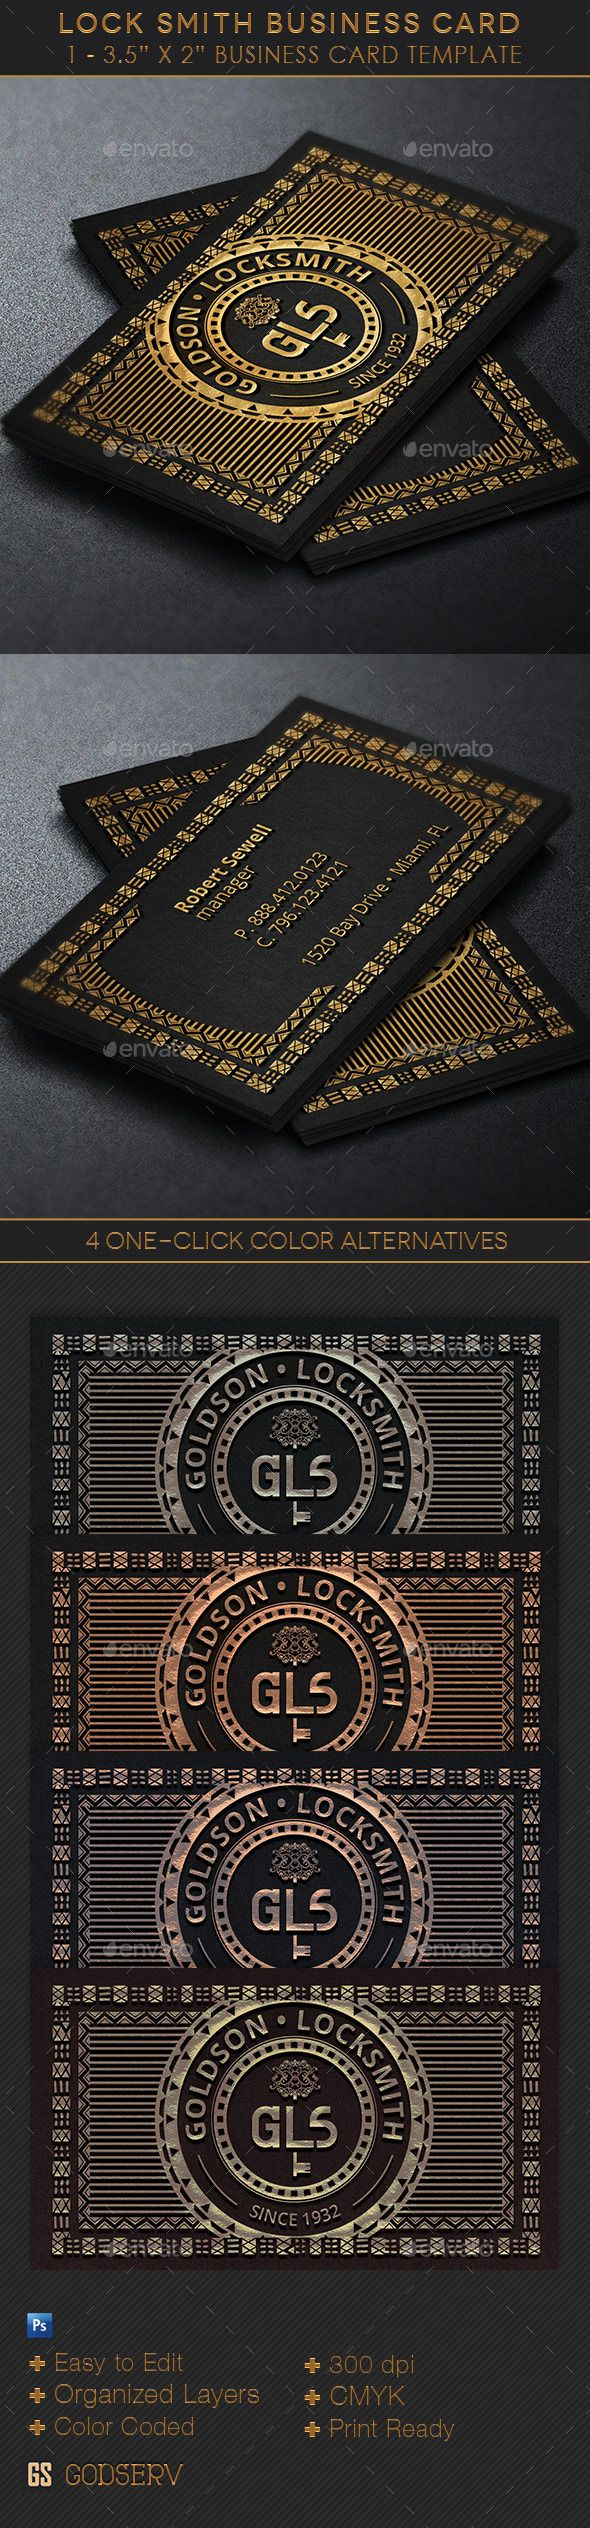 1236 best style images on pinterest fashion designers actresses locksmith business card template magicingreecefo Choice Image